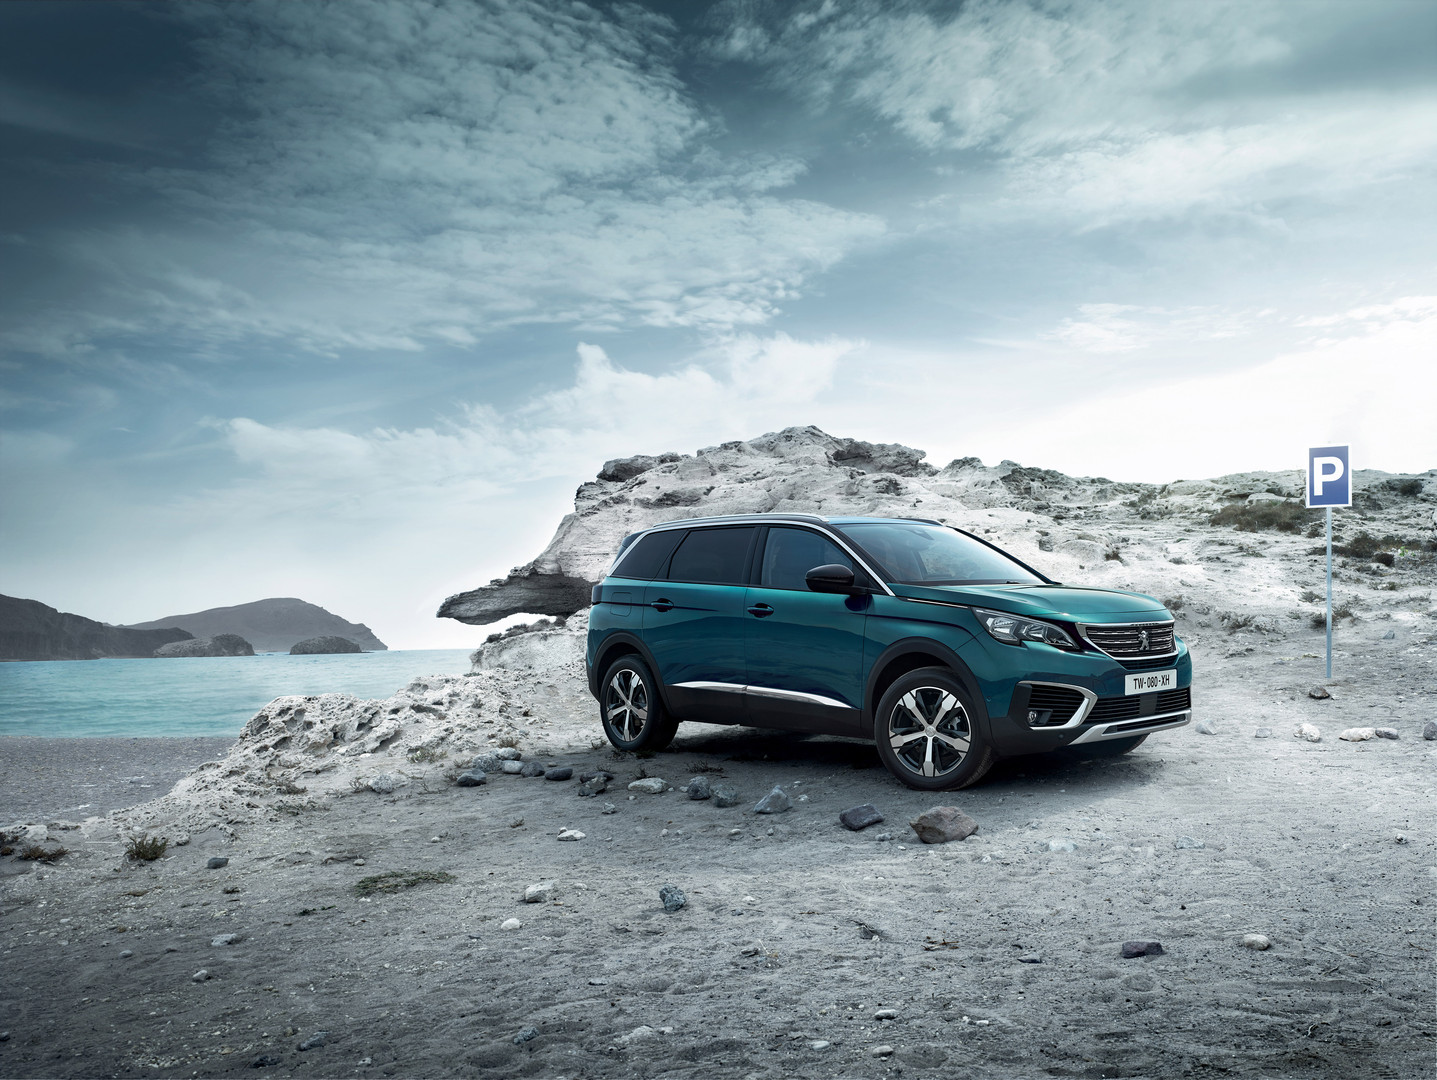 New Peugeot 5008 SUV for £290 per Month